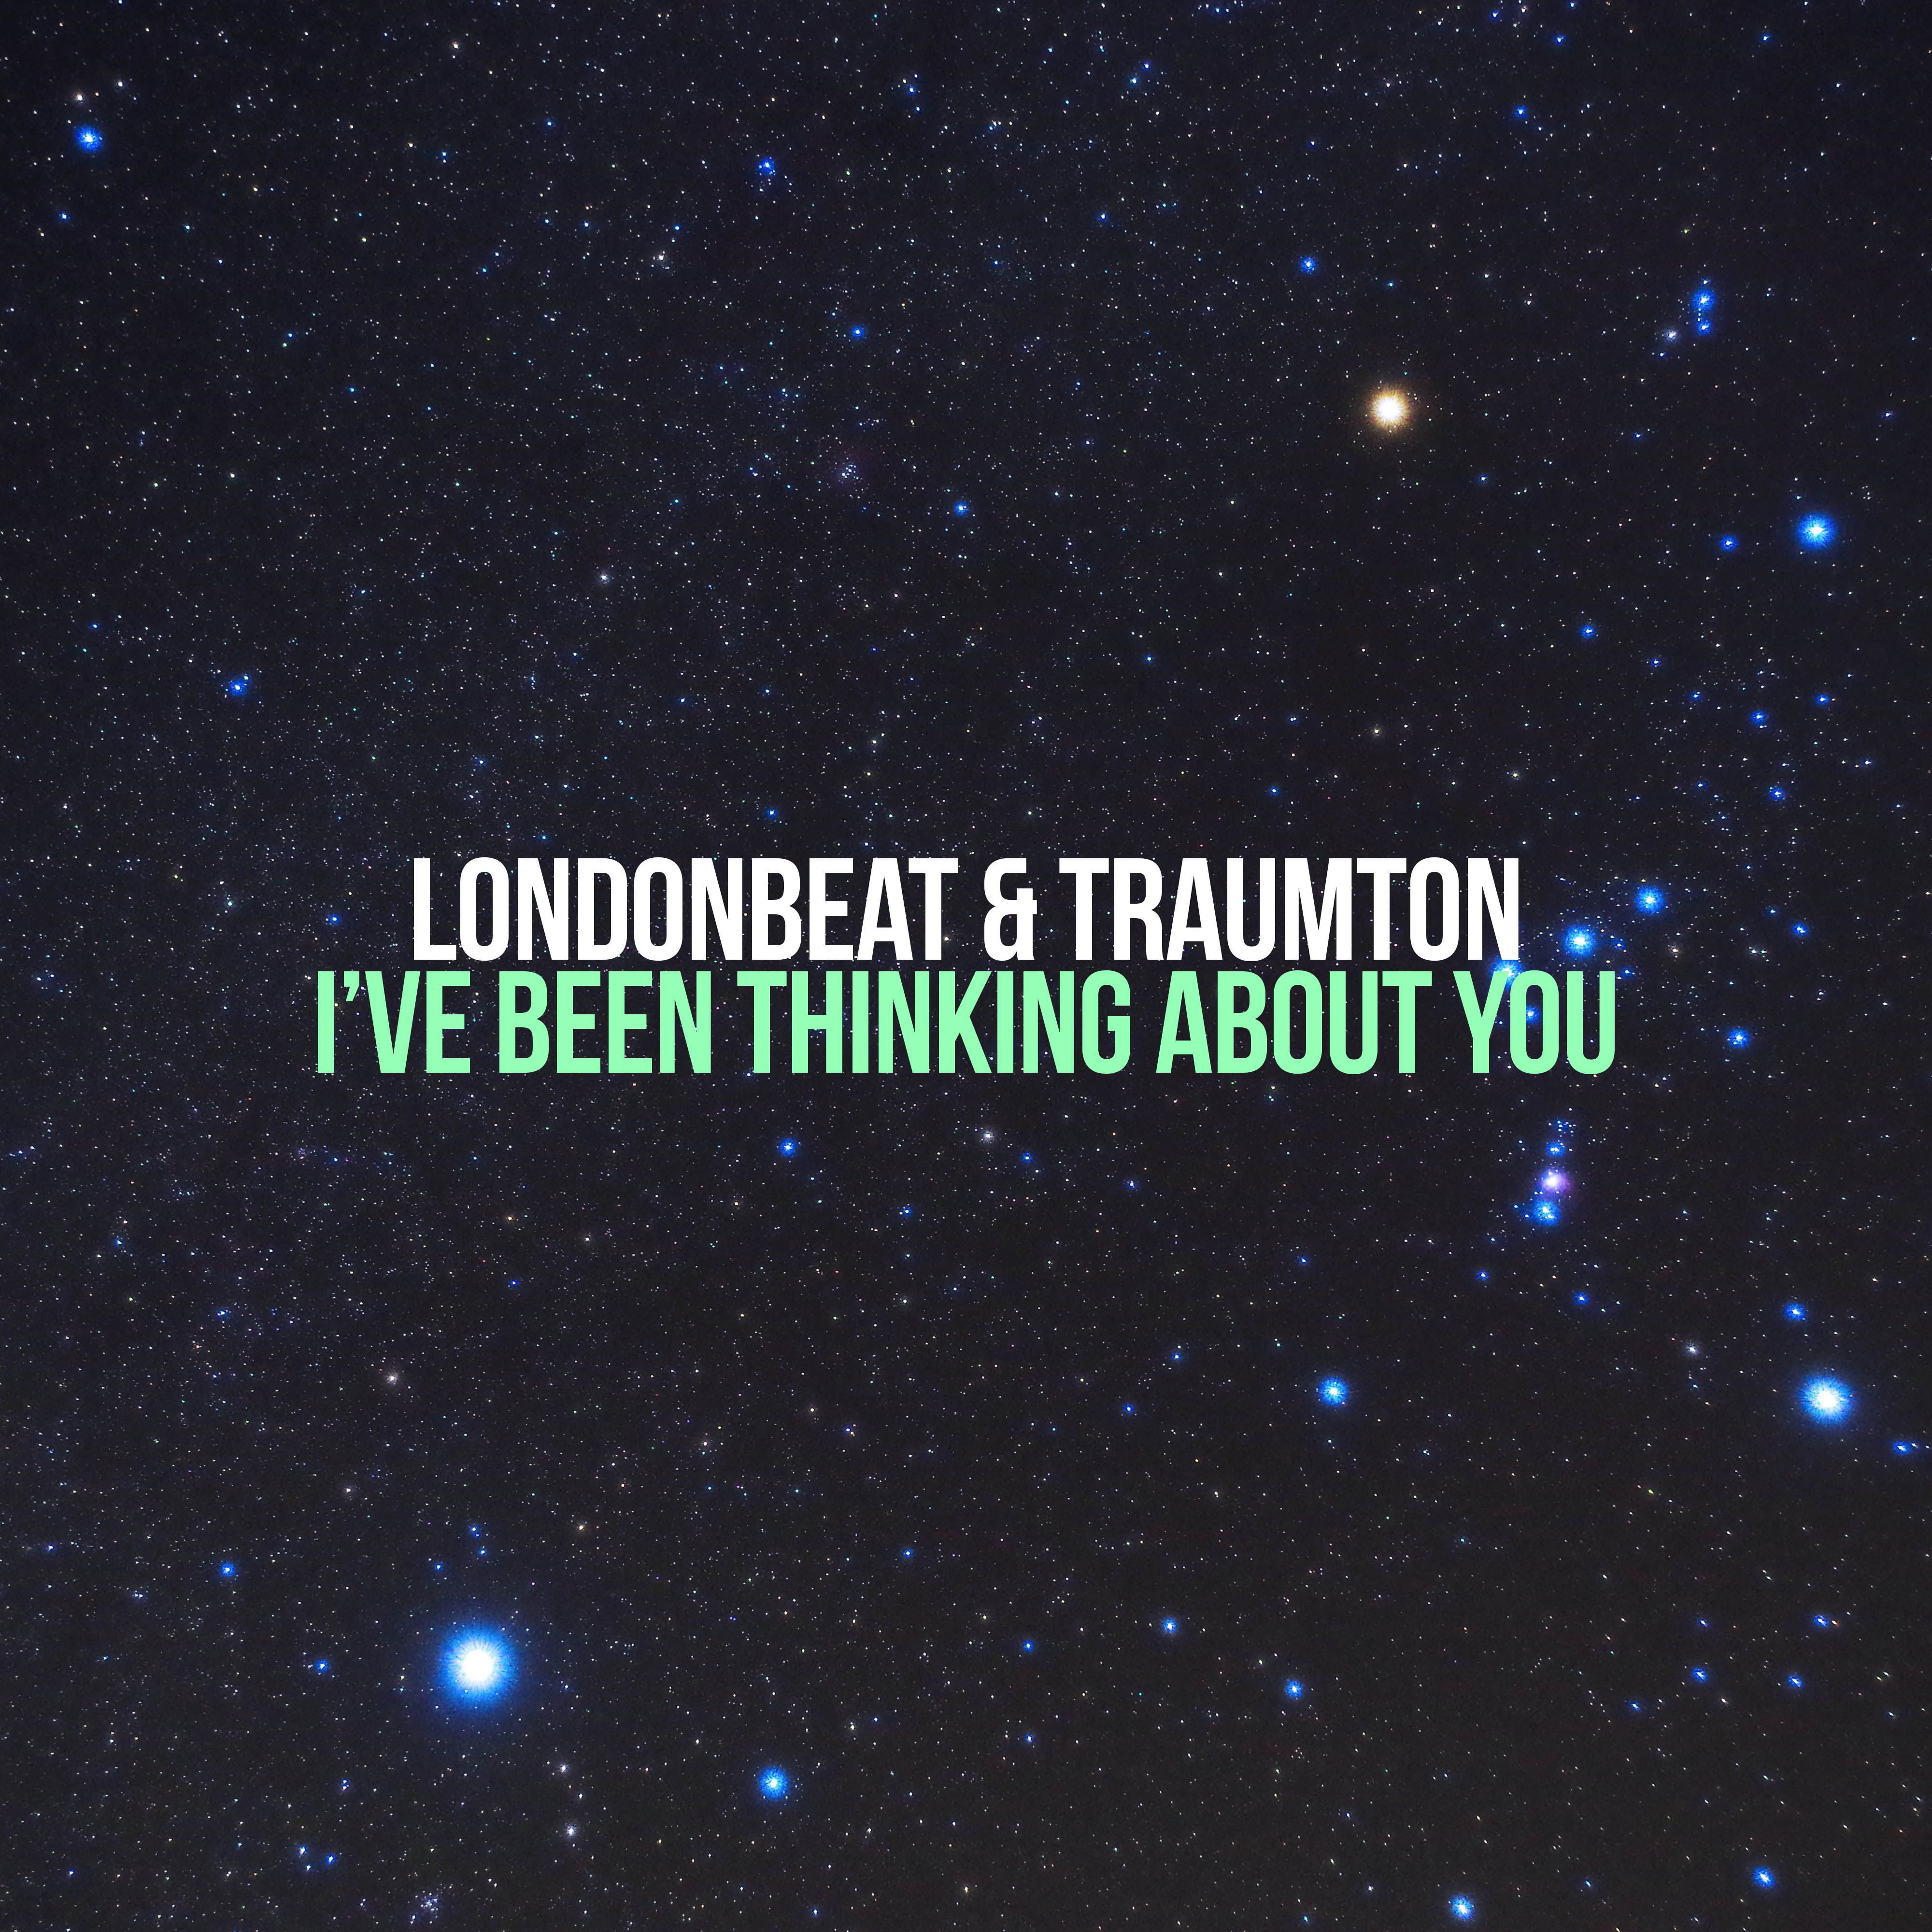 Londonbeat & Traumton